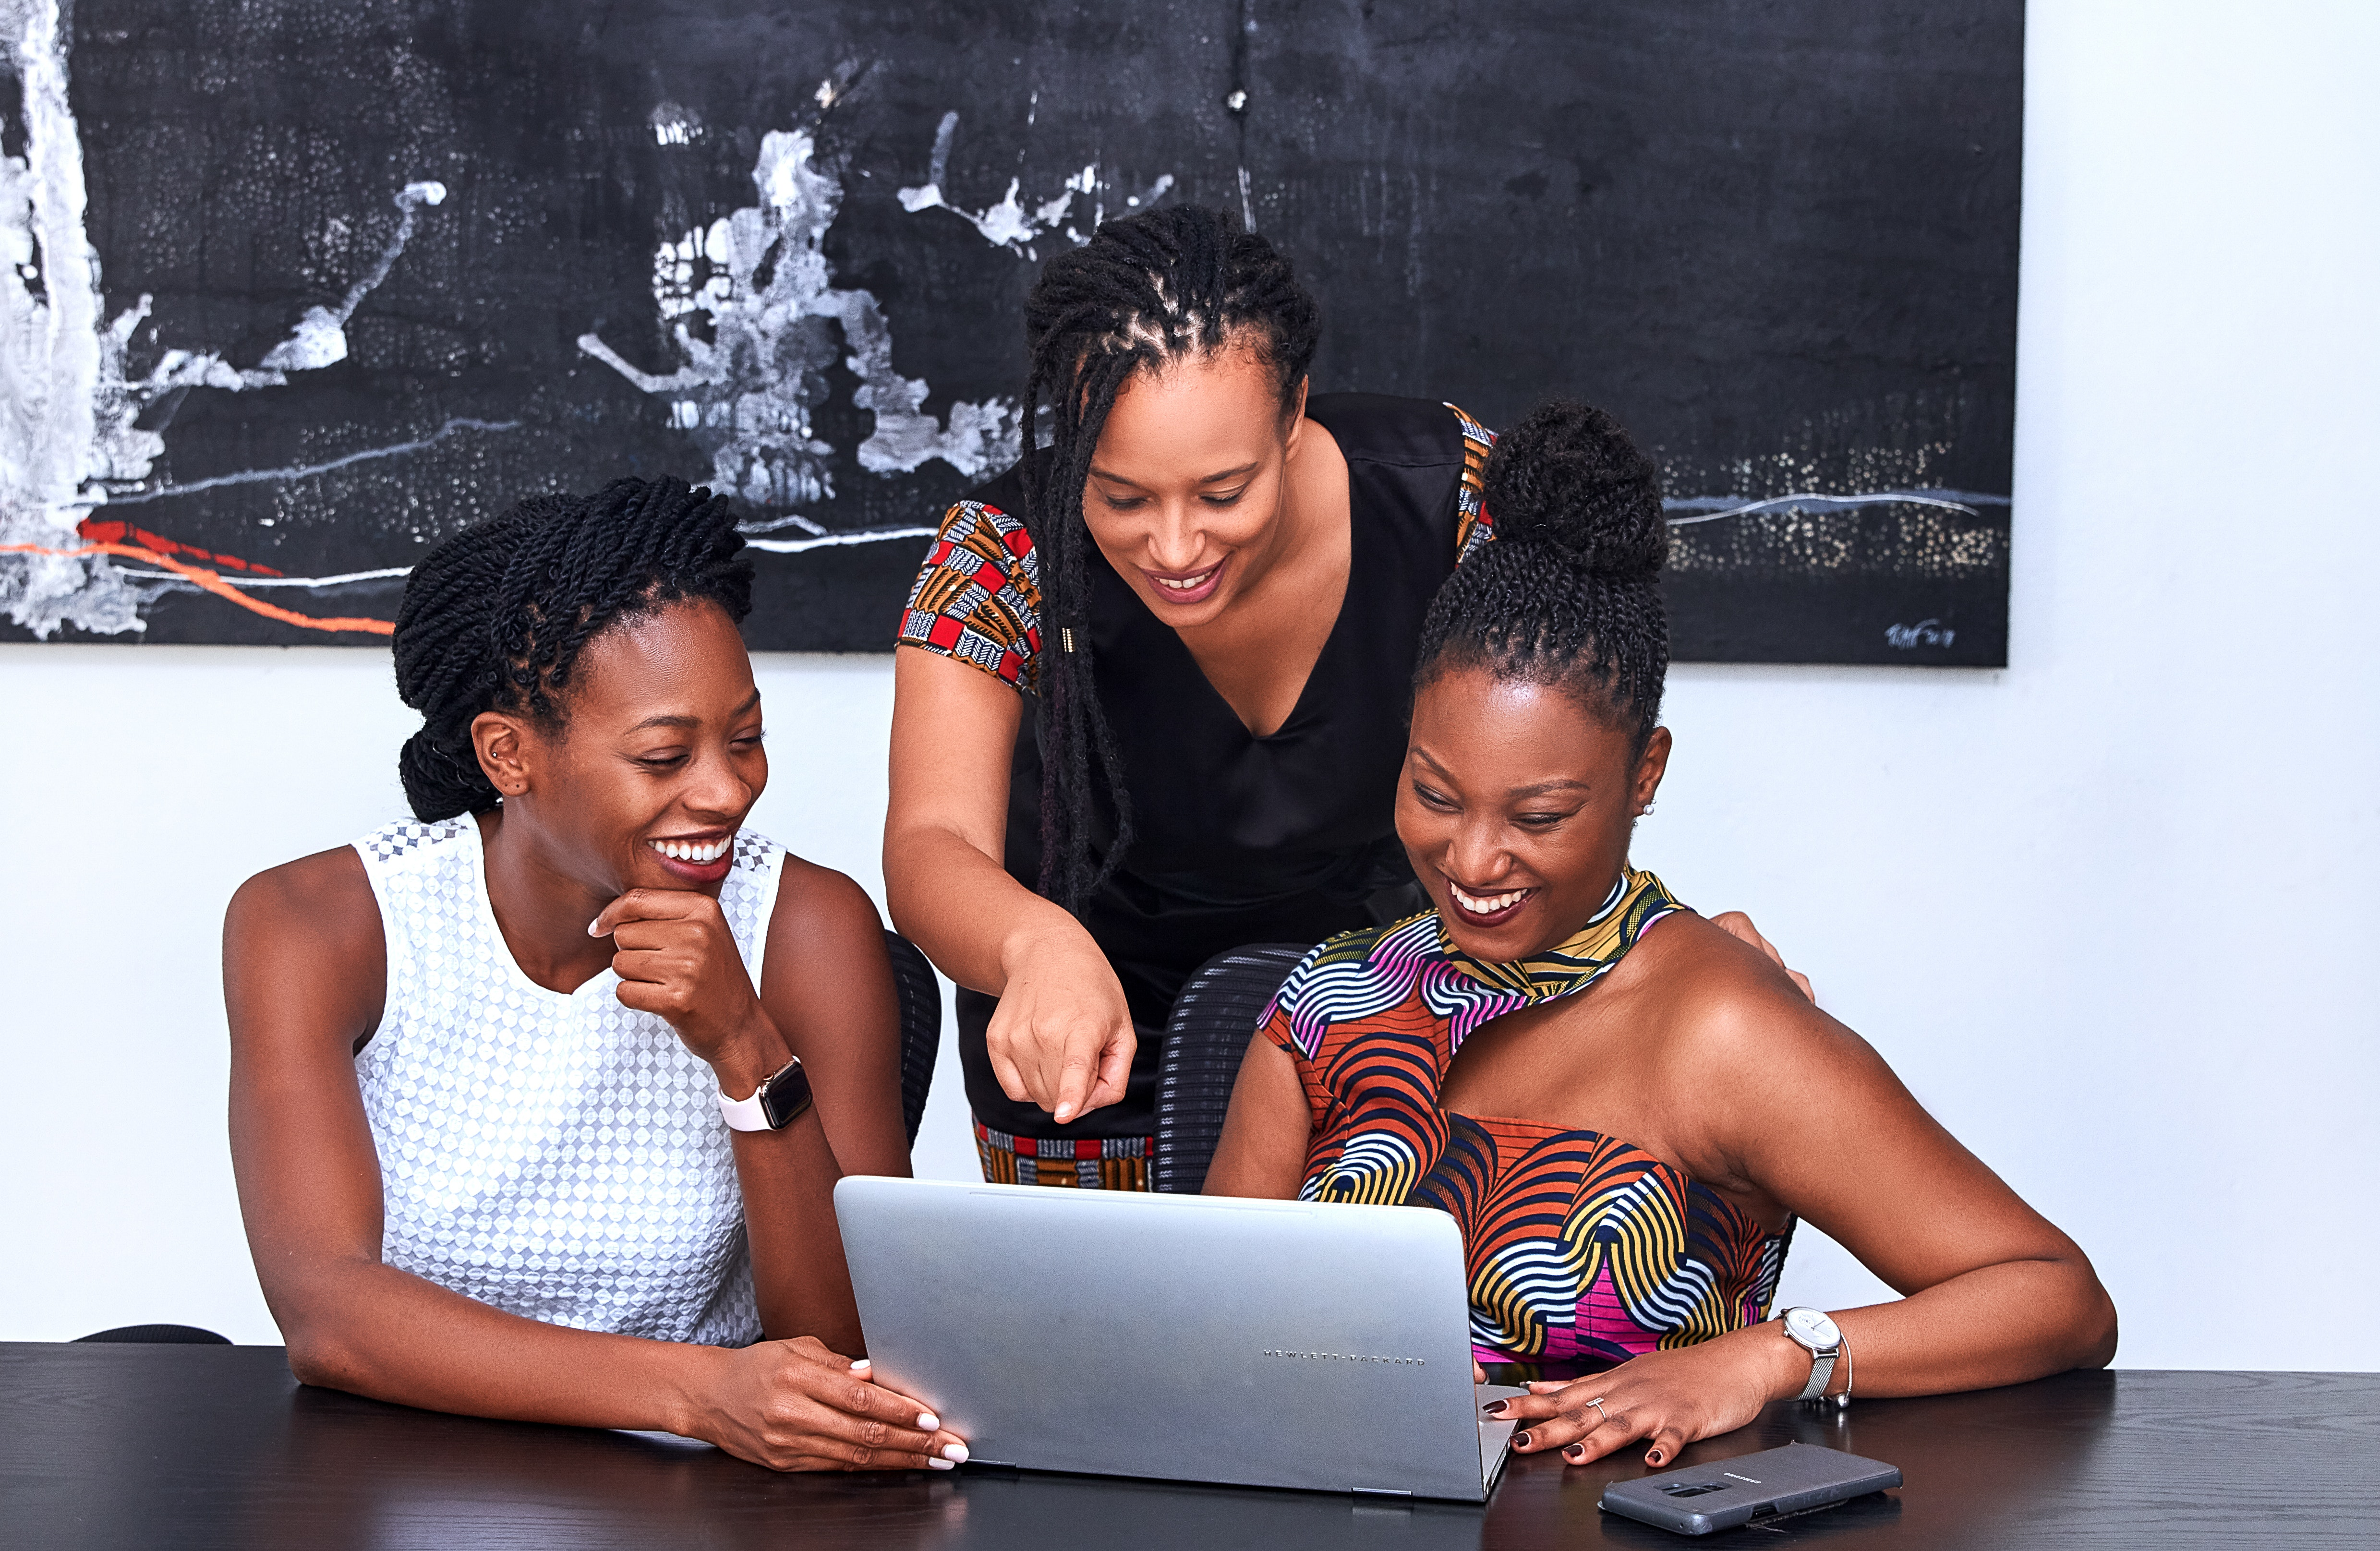 Women for Africa Foundation's Science by Women Program provides a fully-funded opportunity for African women researchers